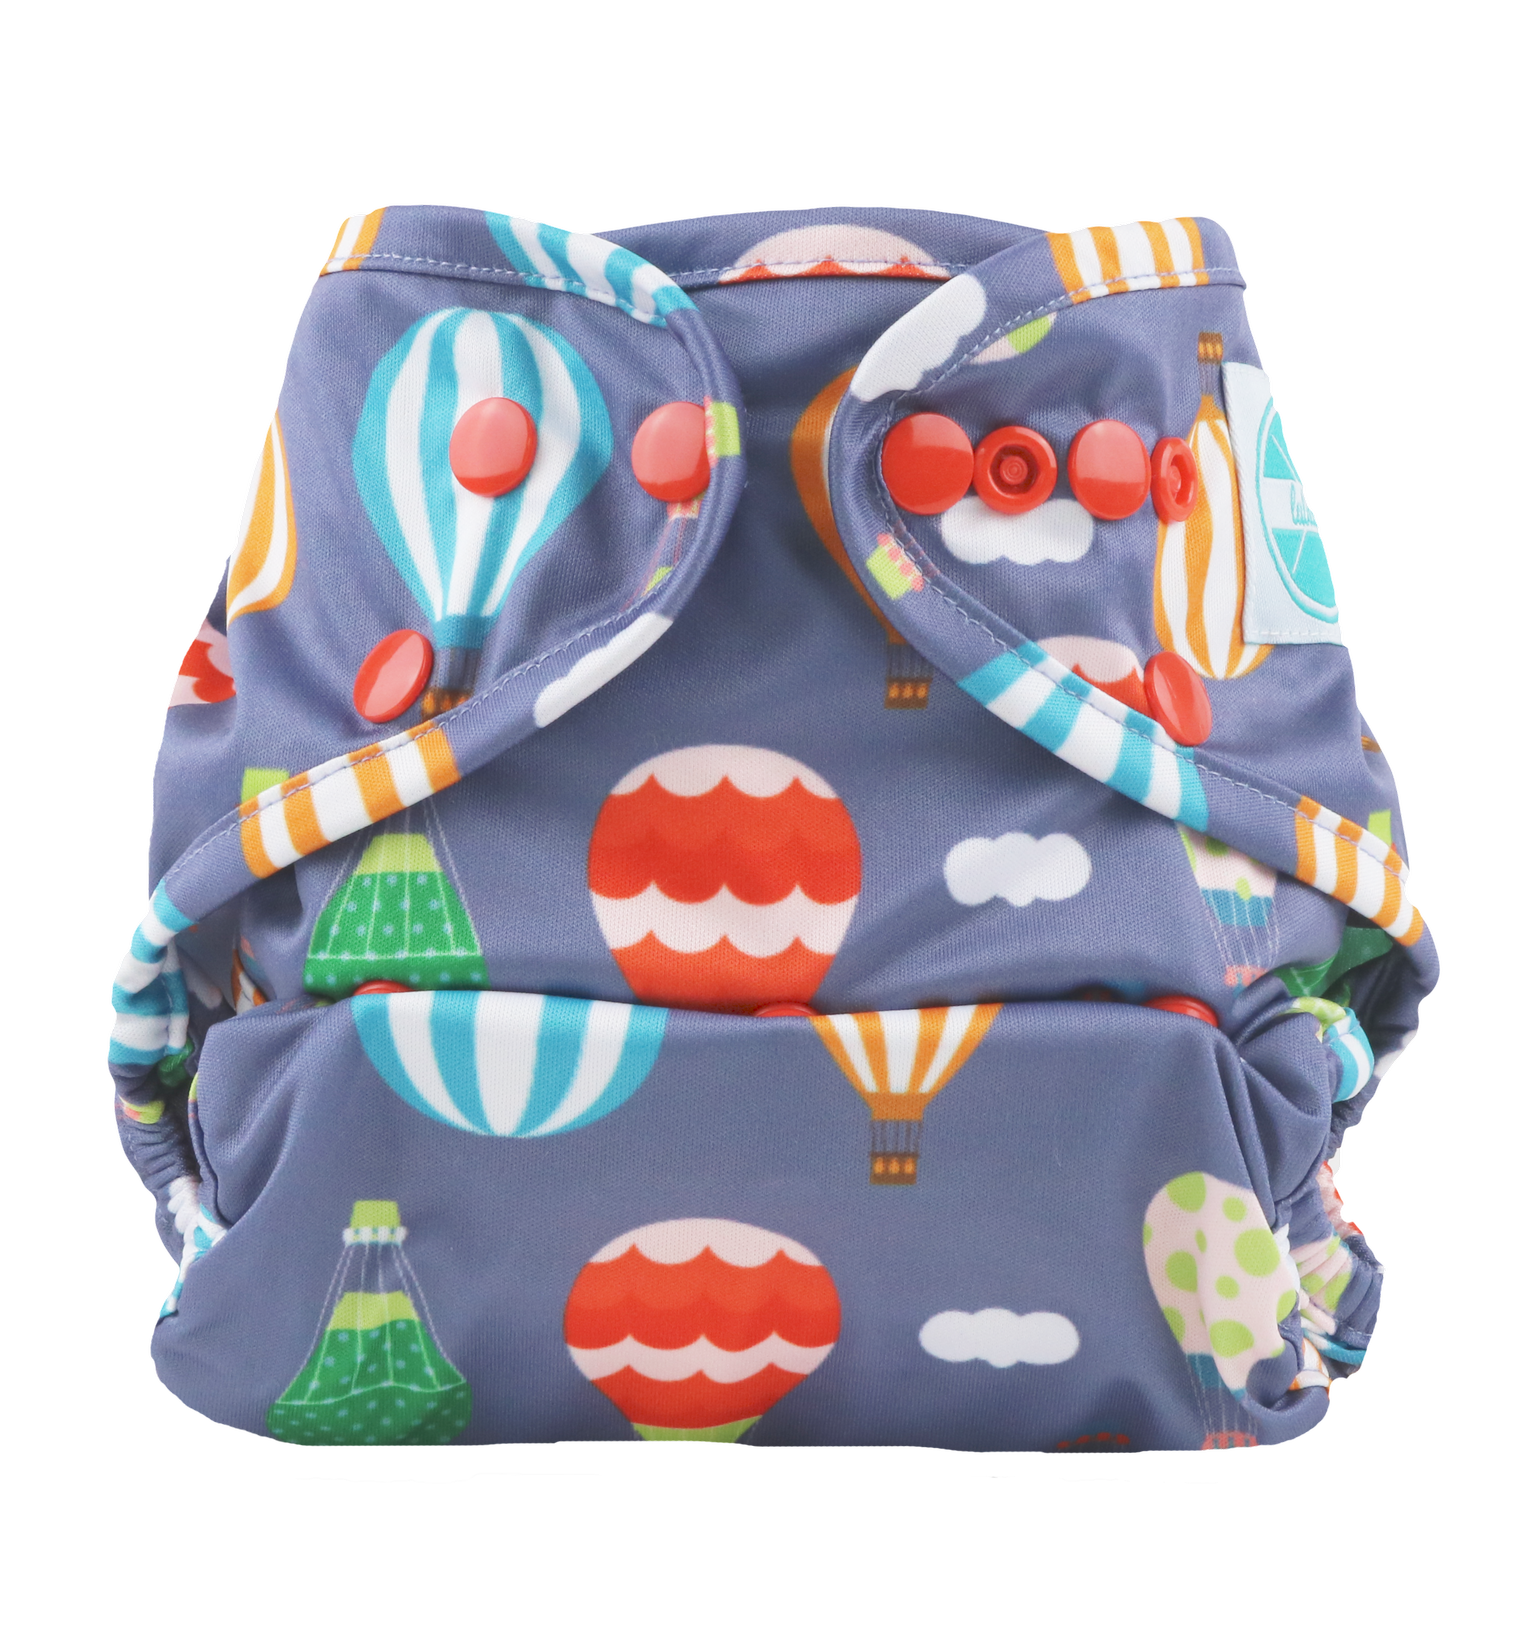 Luludew NB and Convertible Diaper Covers